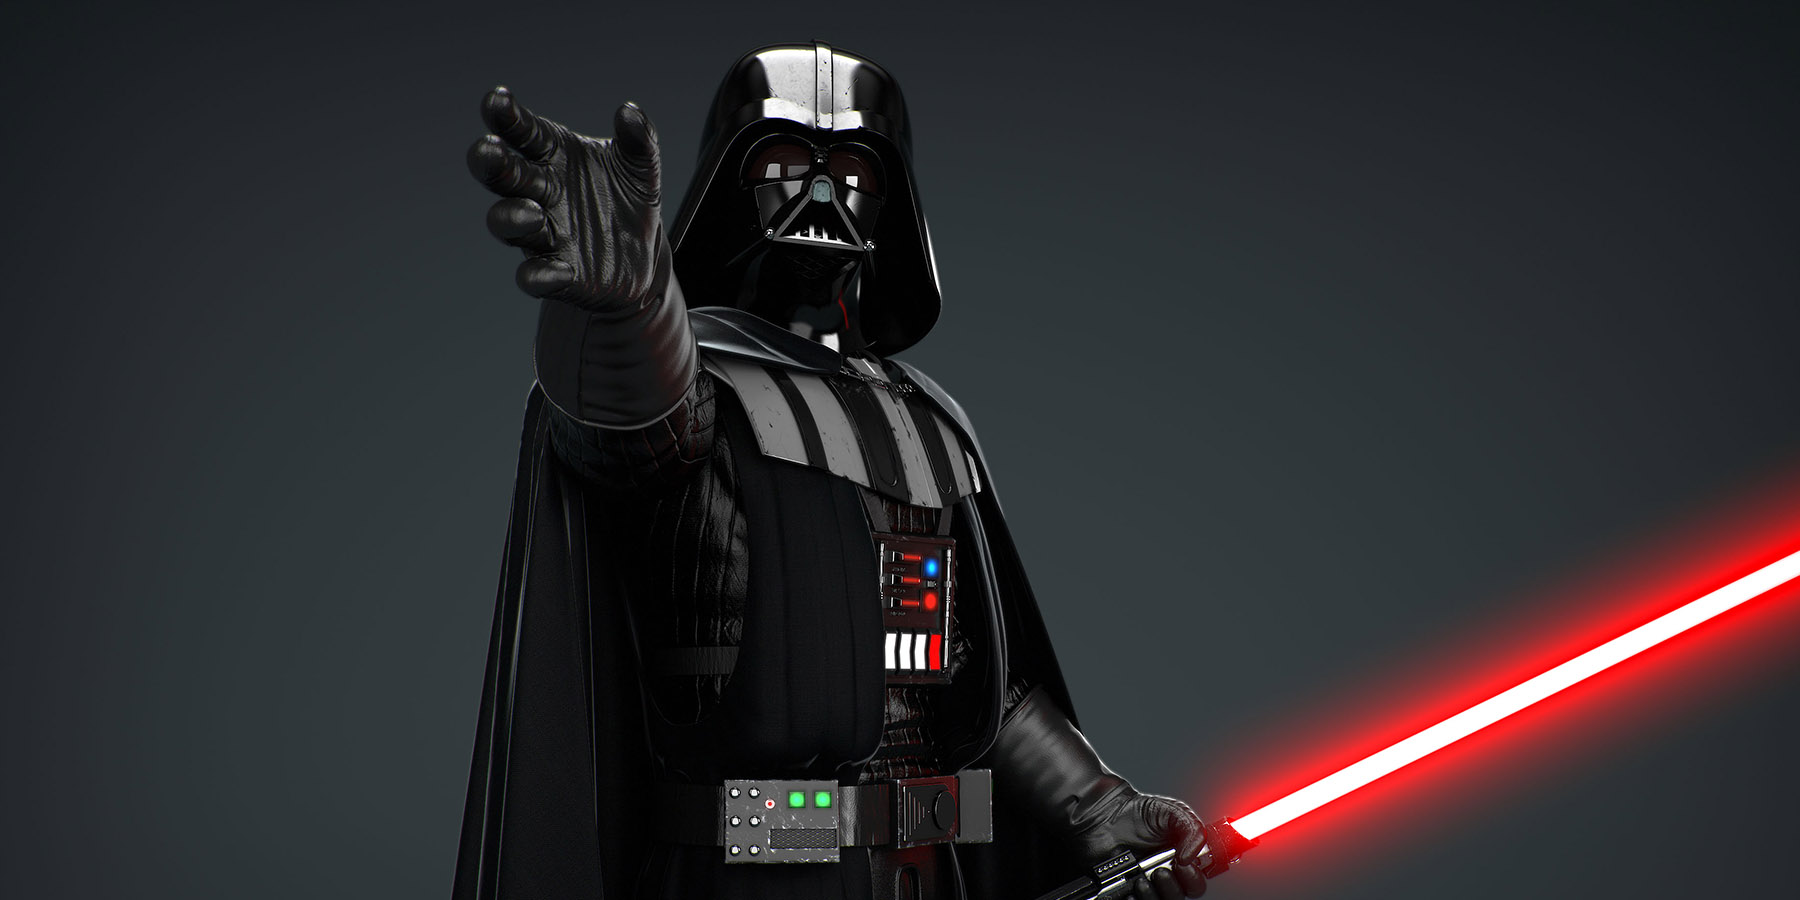 Star-Wars-Darth-Vader-Wallpaper.jpg